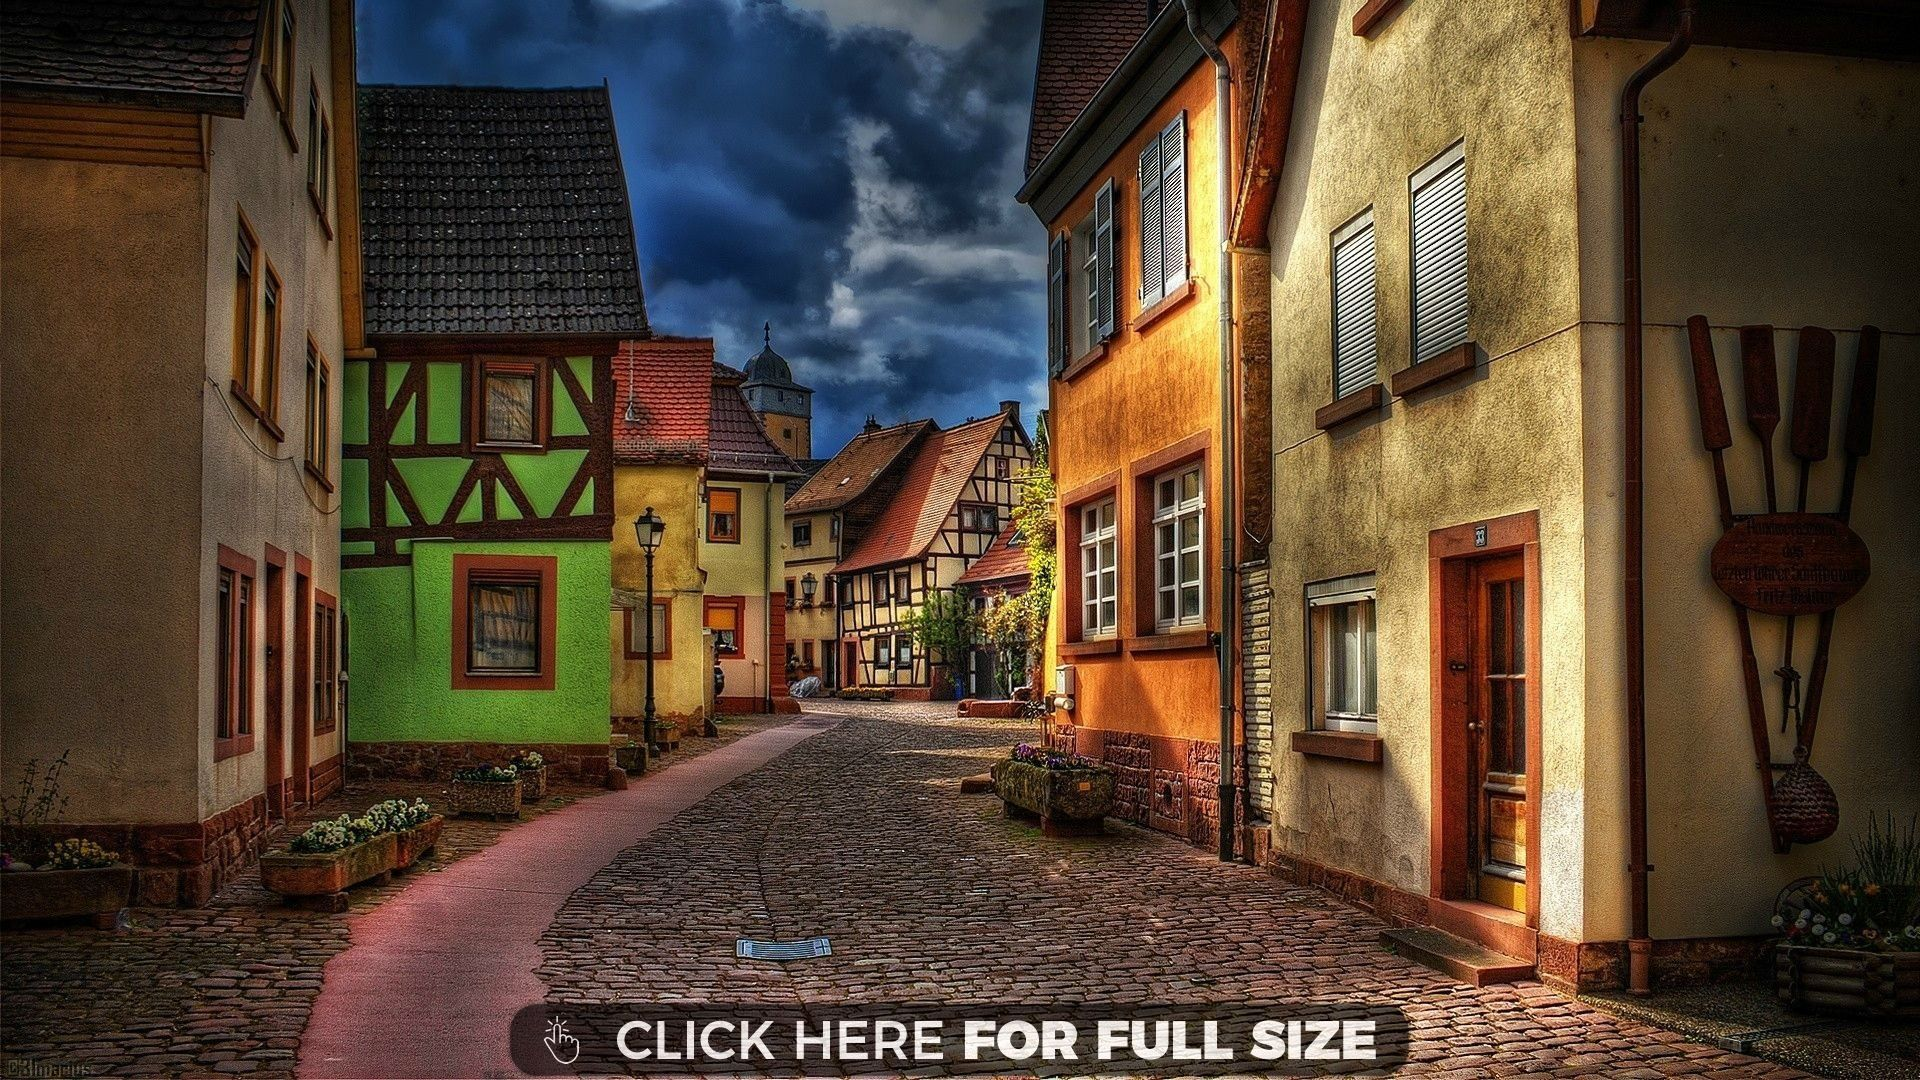 Street 4k Wallpapers For Your Desktop Or Mobile Screen Free And Easy To Download Europe Wallpaper Street Pictures World Wallpaper